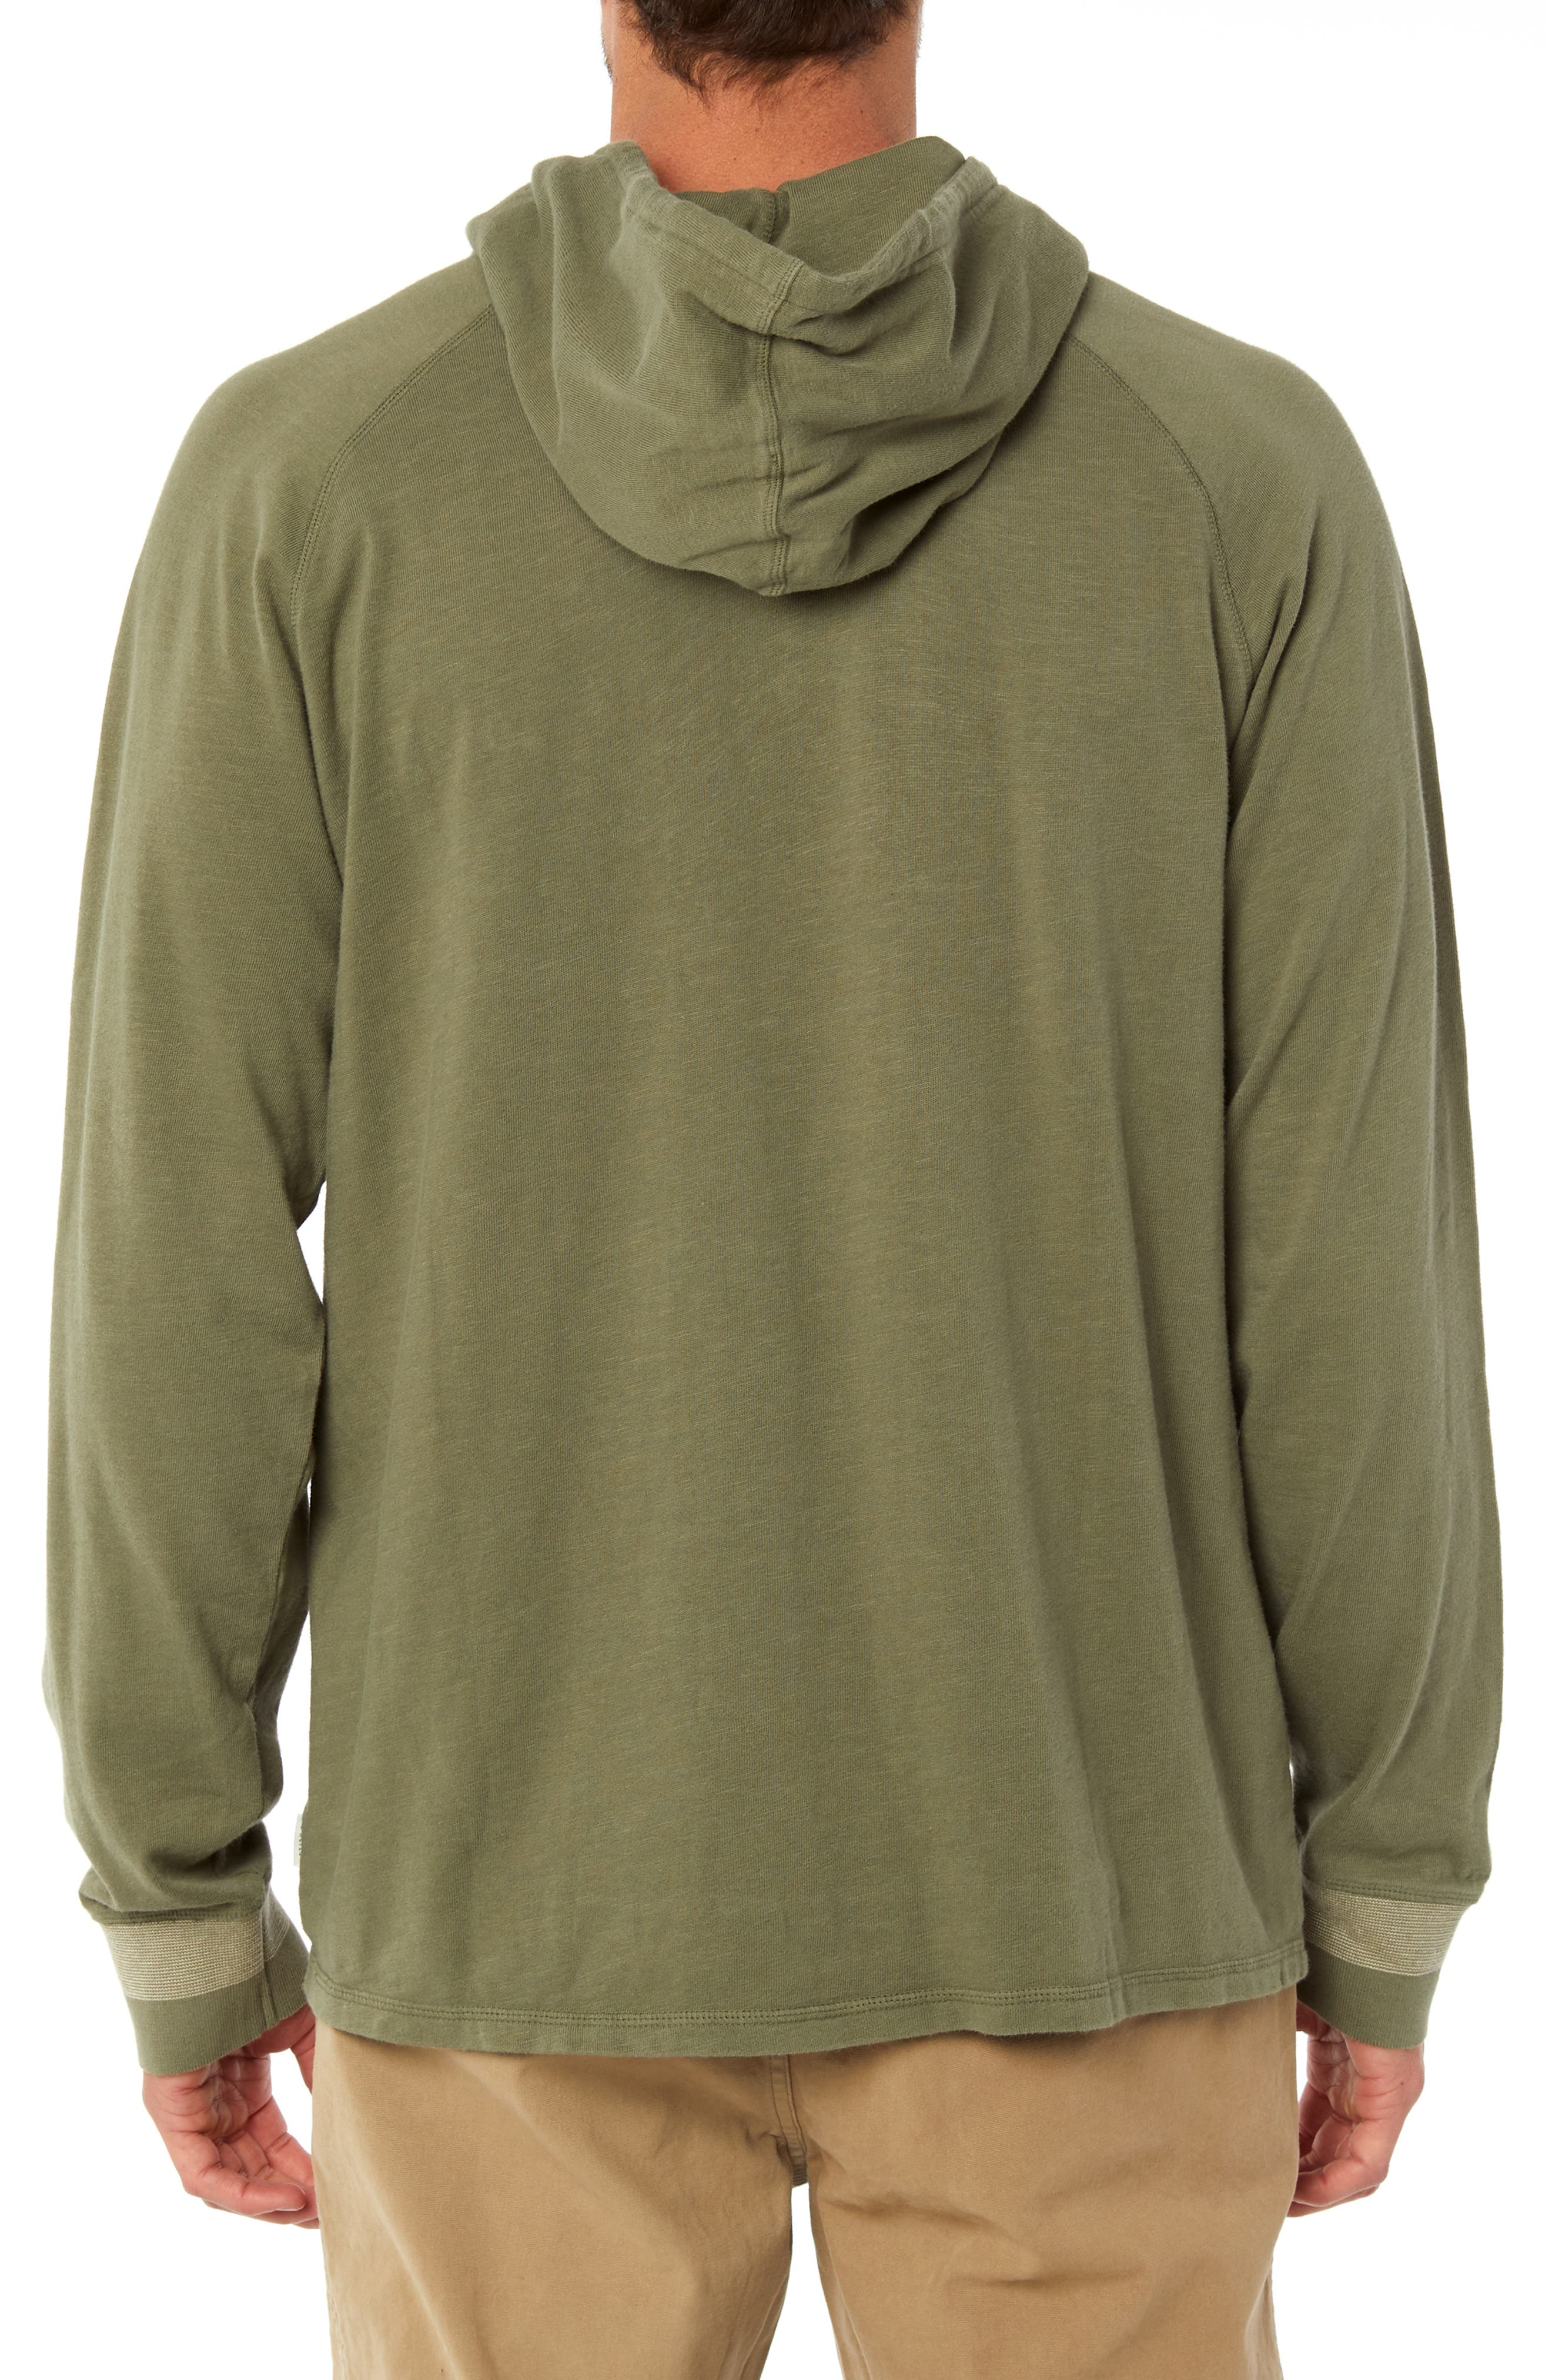 Undersail Hoodie,                             Alternate thumbnail 2, color,                             307